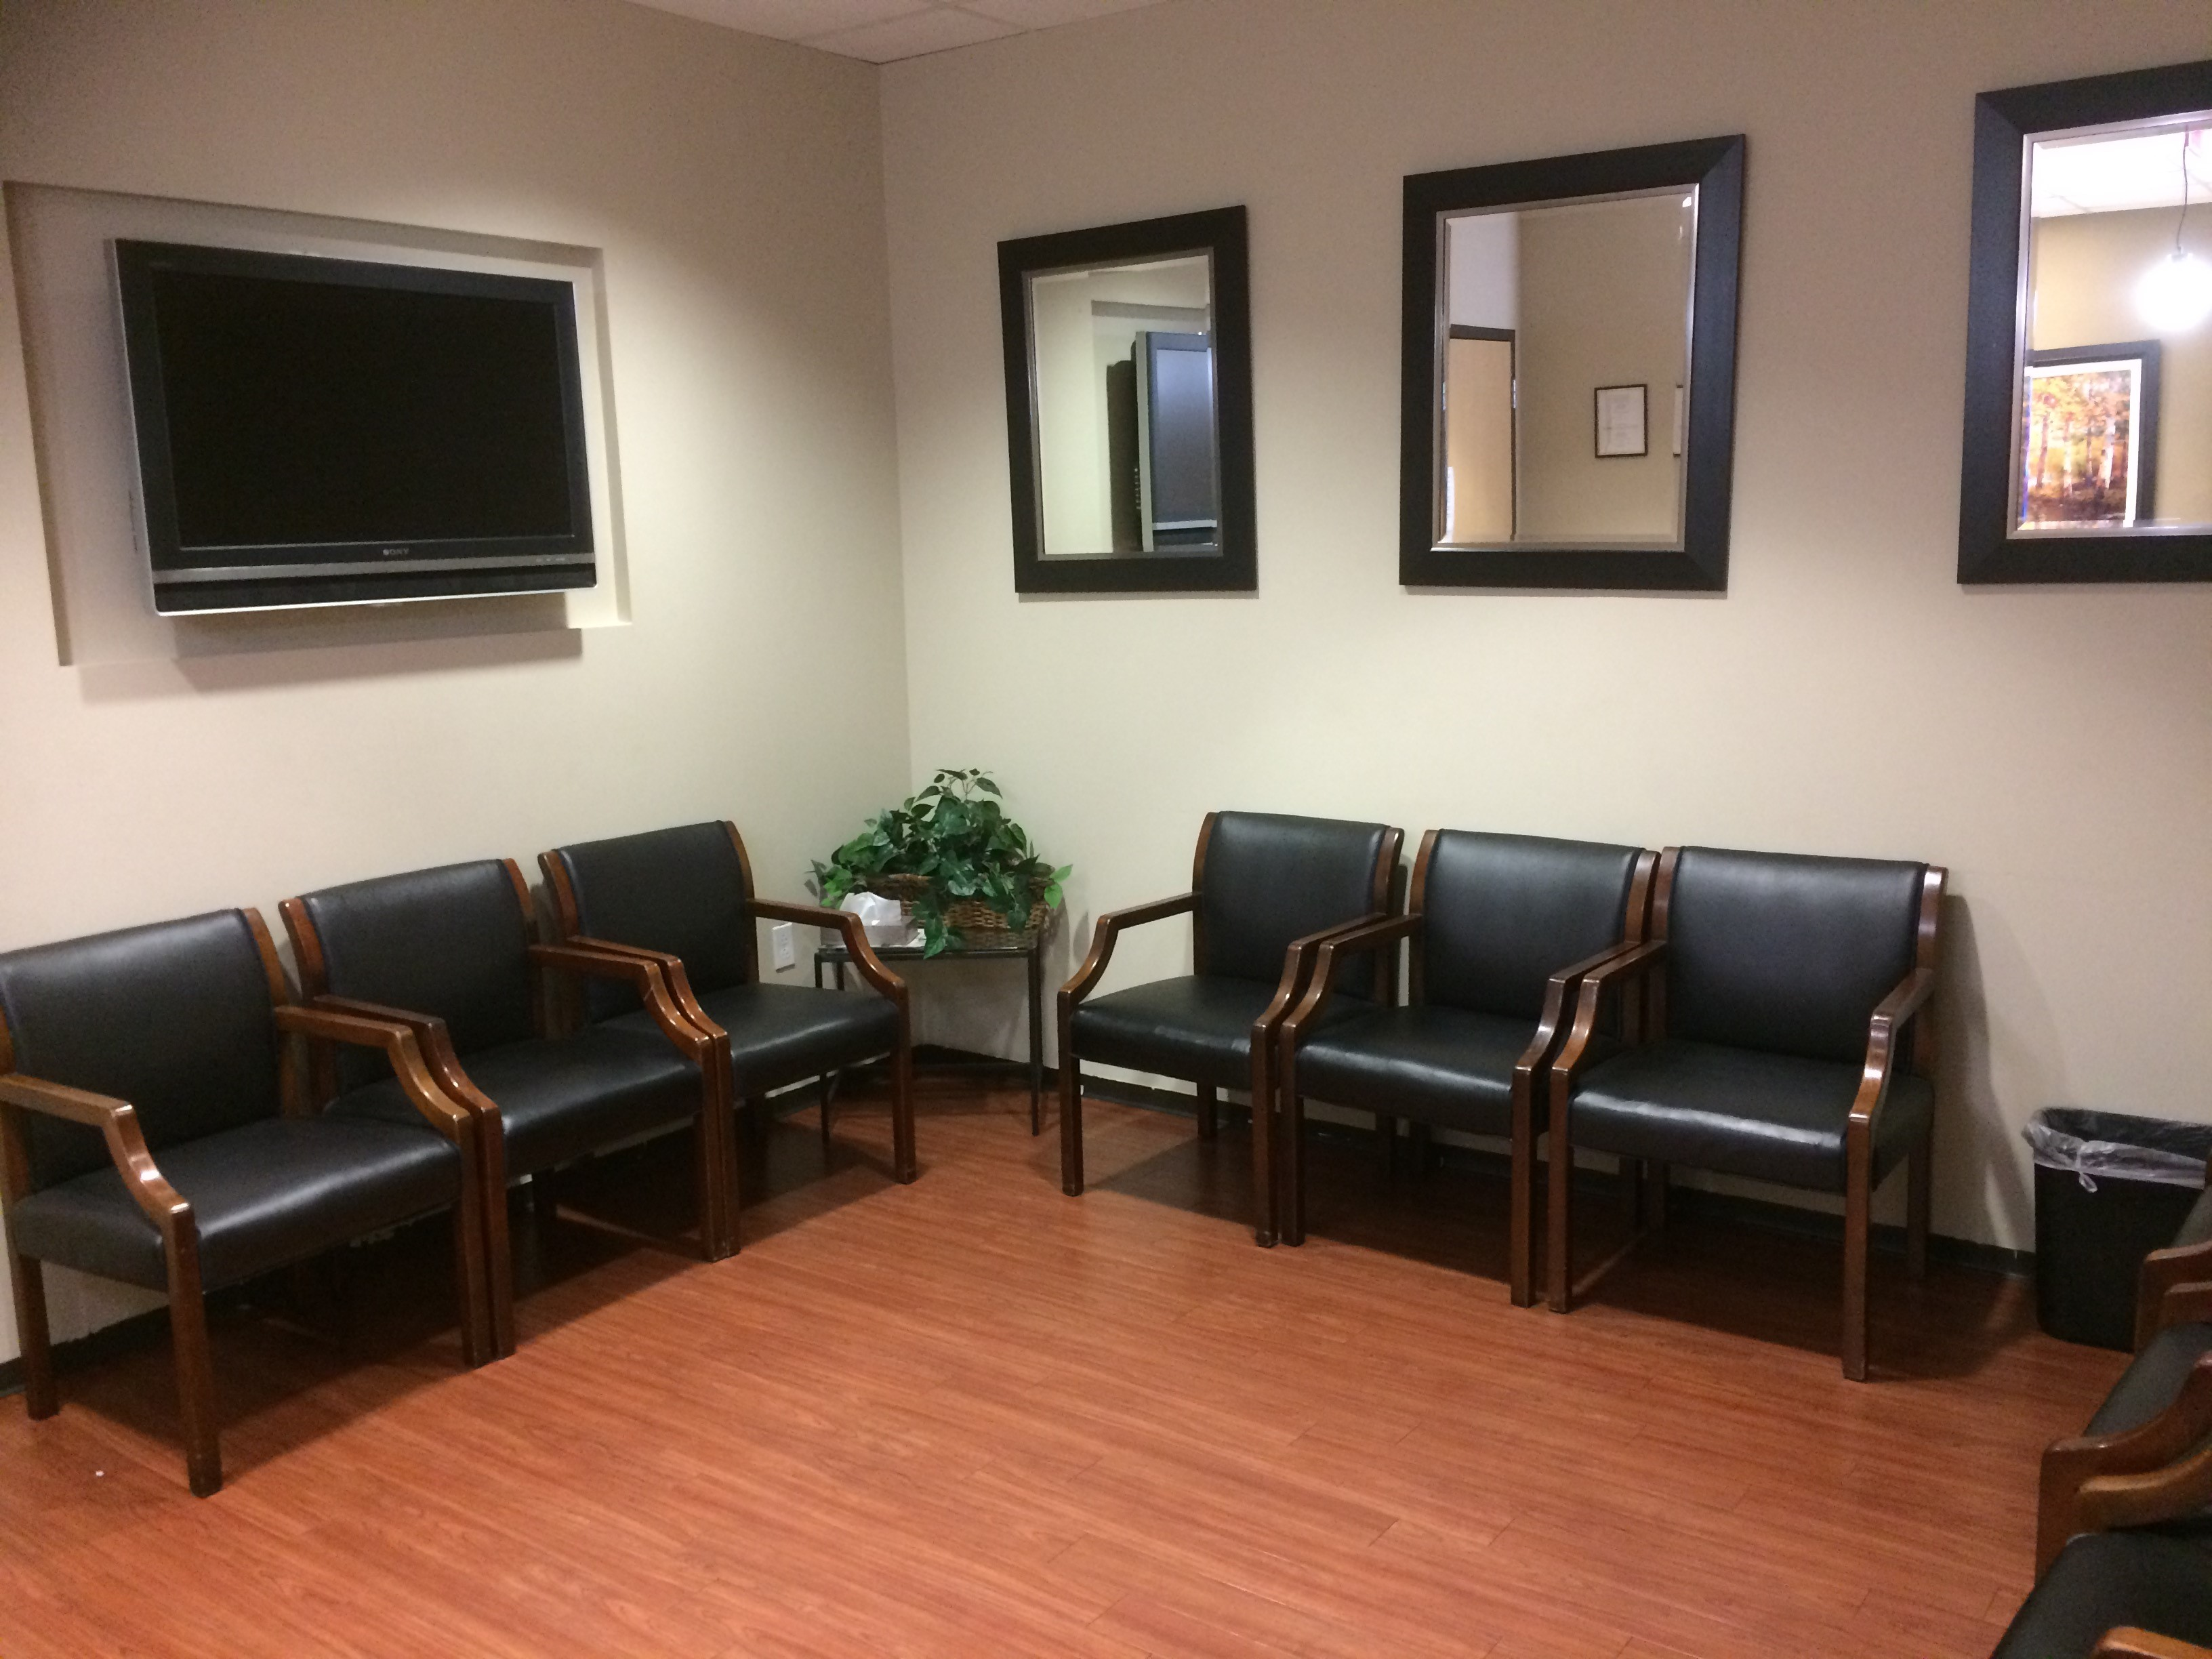 Interventional Pain and Recovery Center image 3